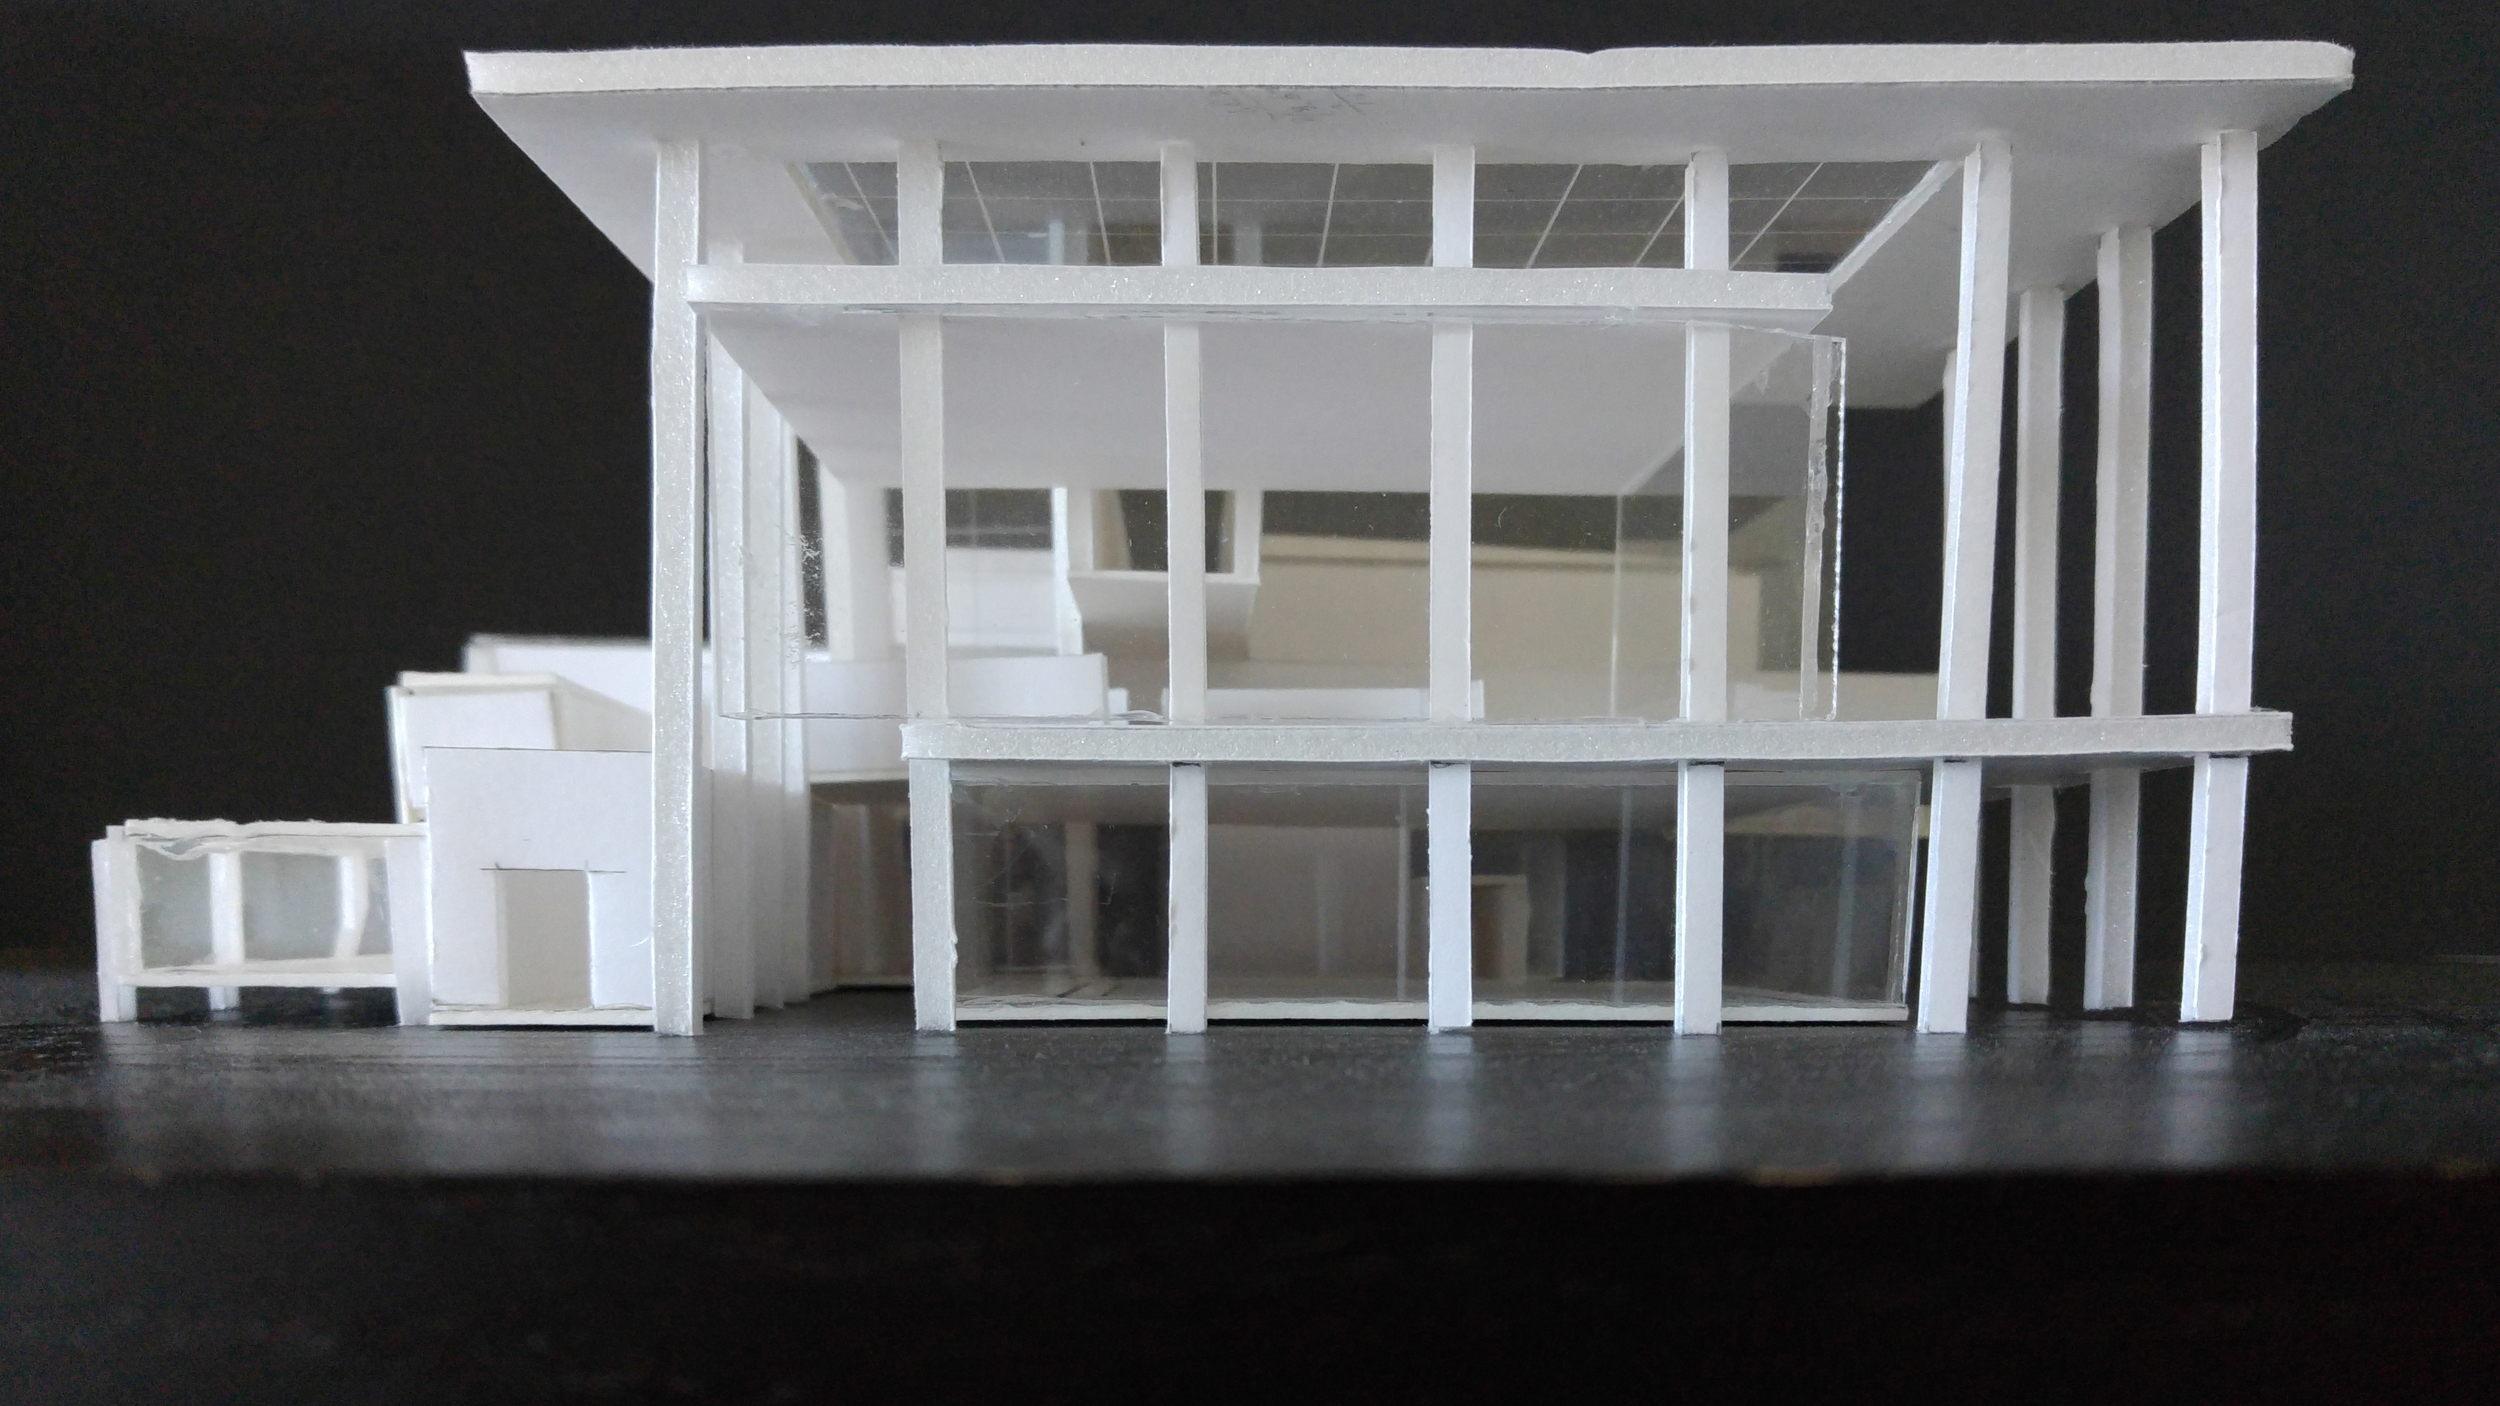 community center proposal massing model